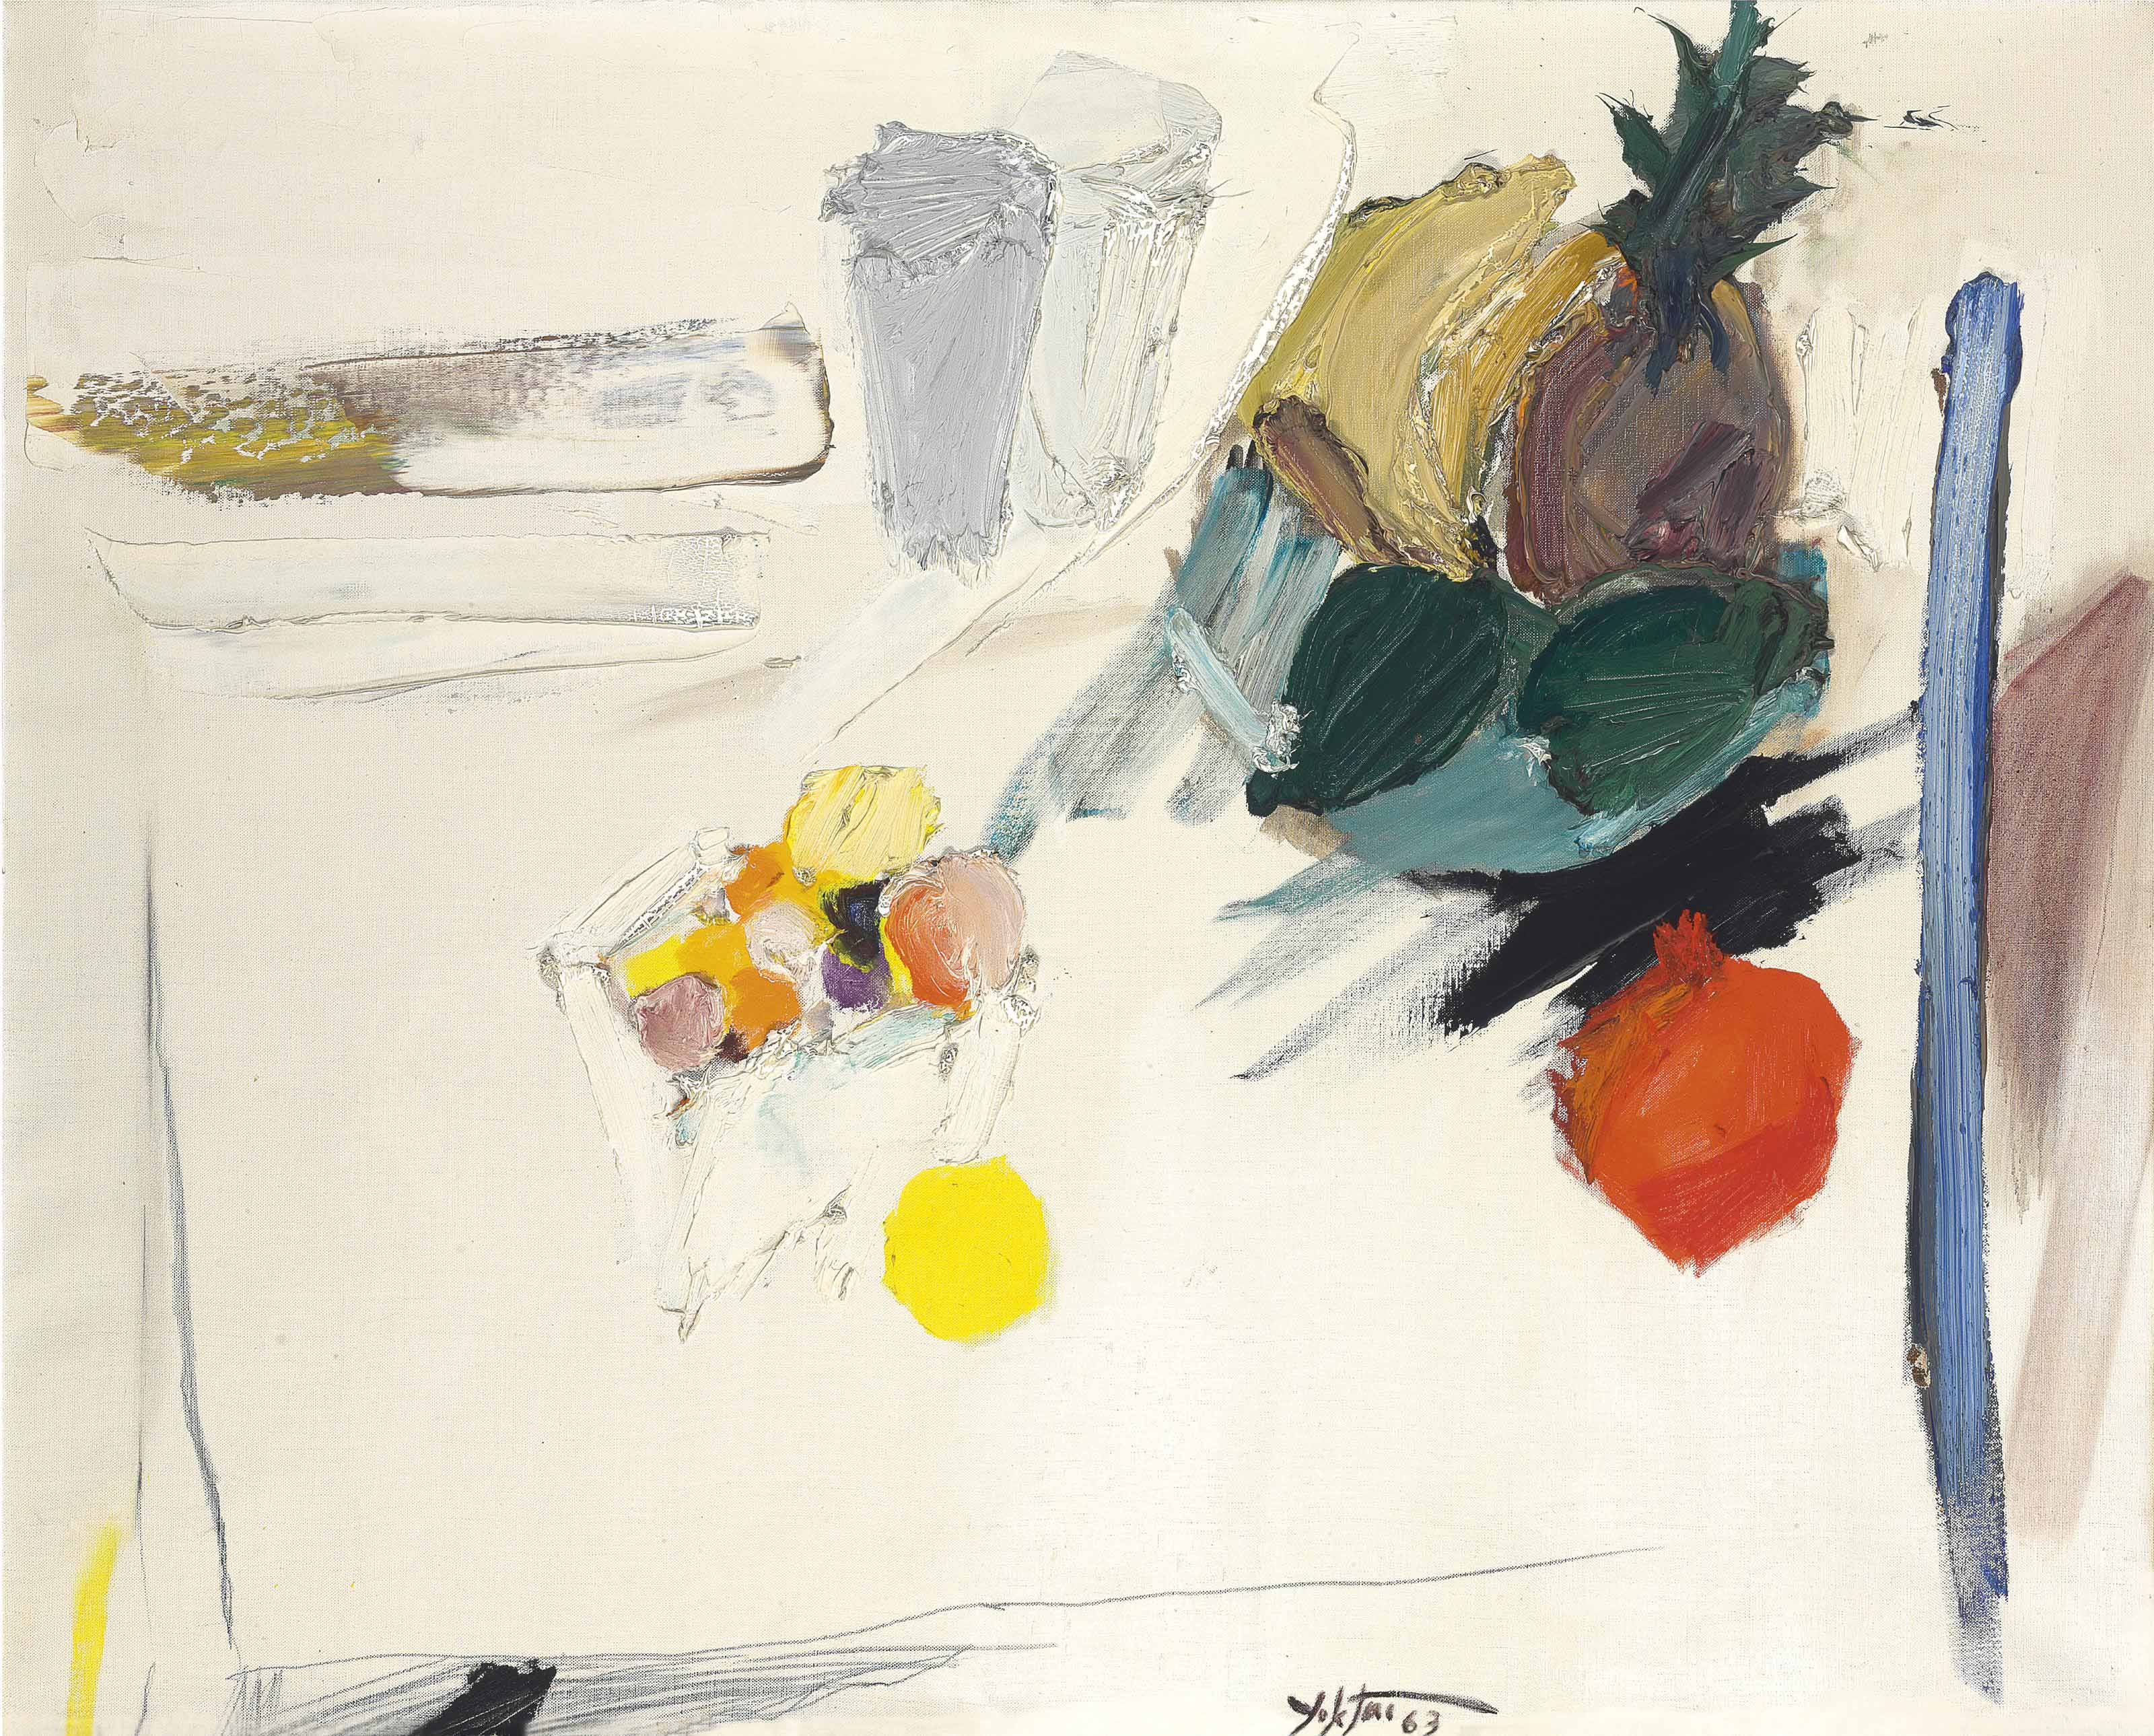 Untitled (Fruit on Table)